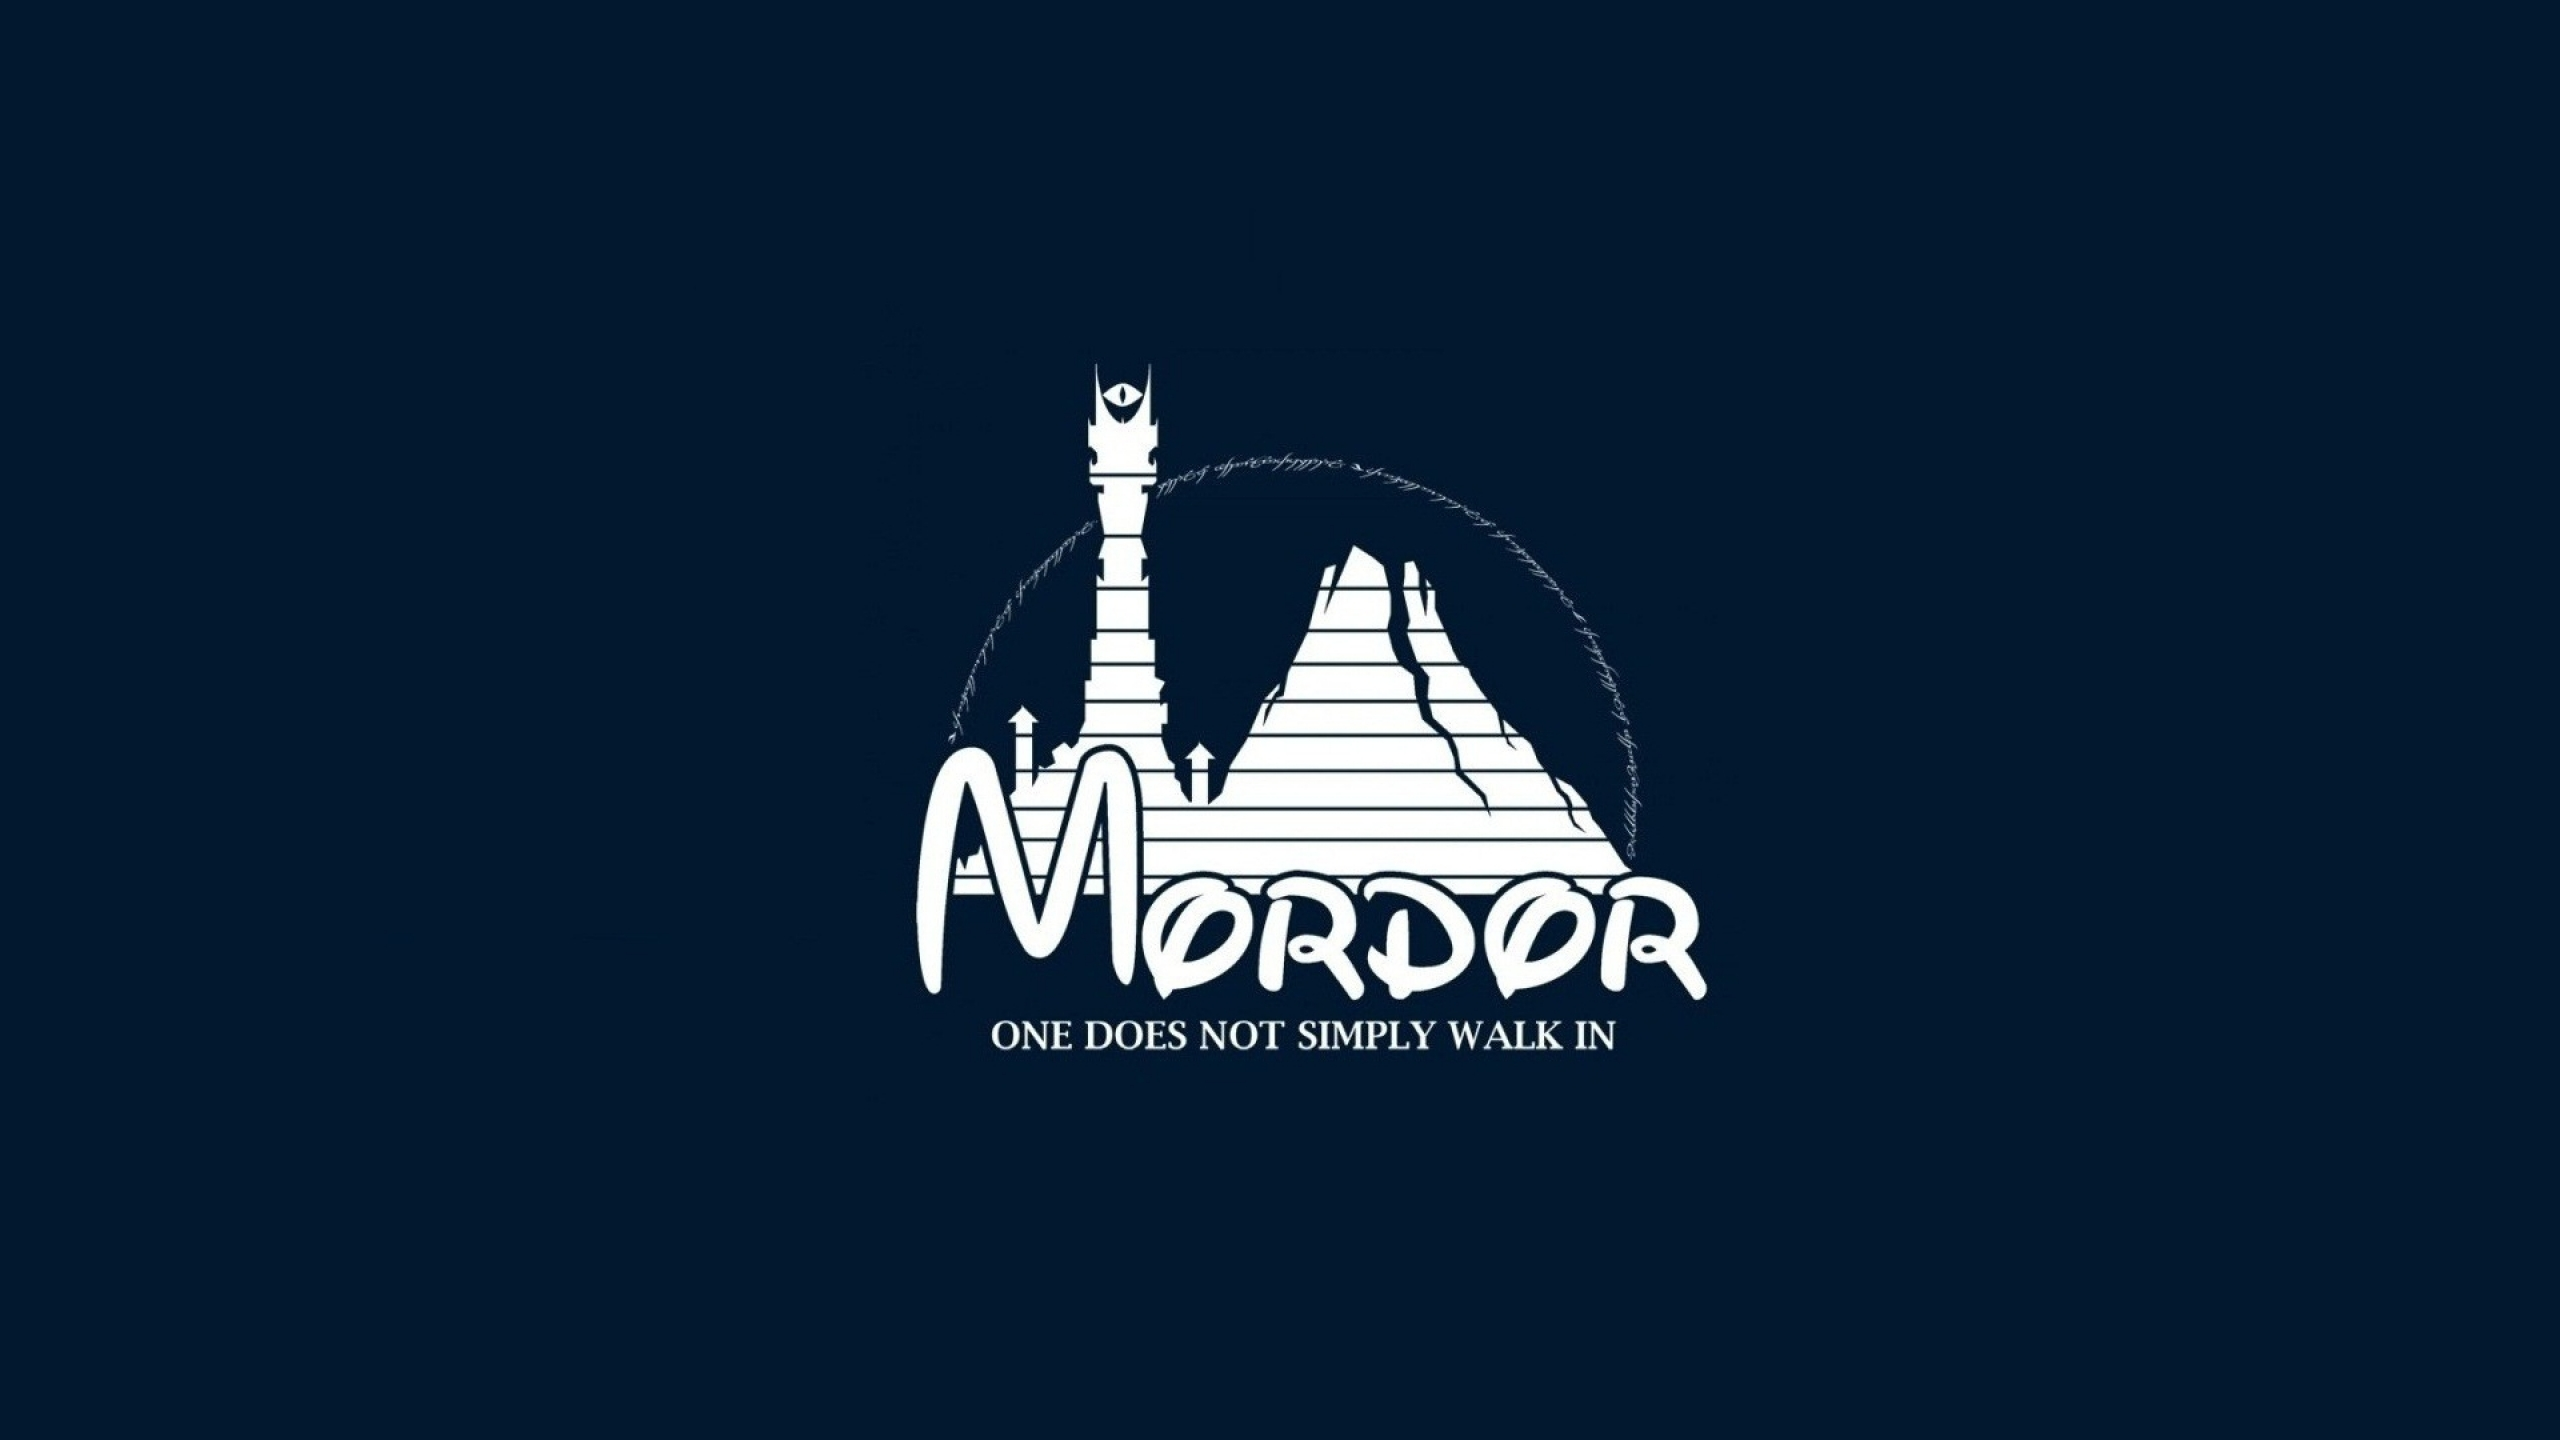 lord of the rings mordor simplistic disney logo 1920x1080 wallpaper 2560x1440